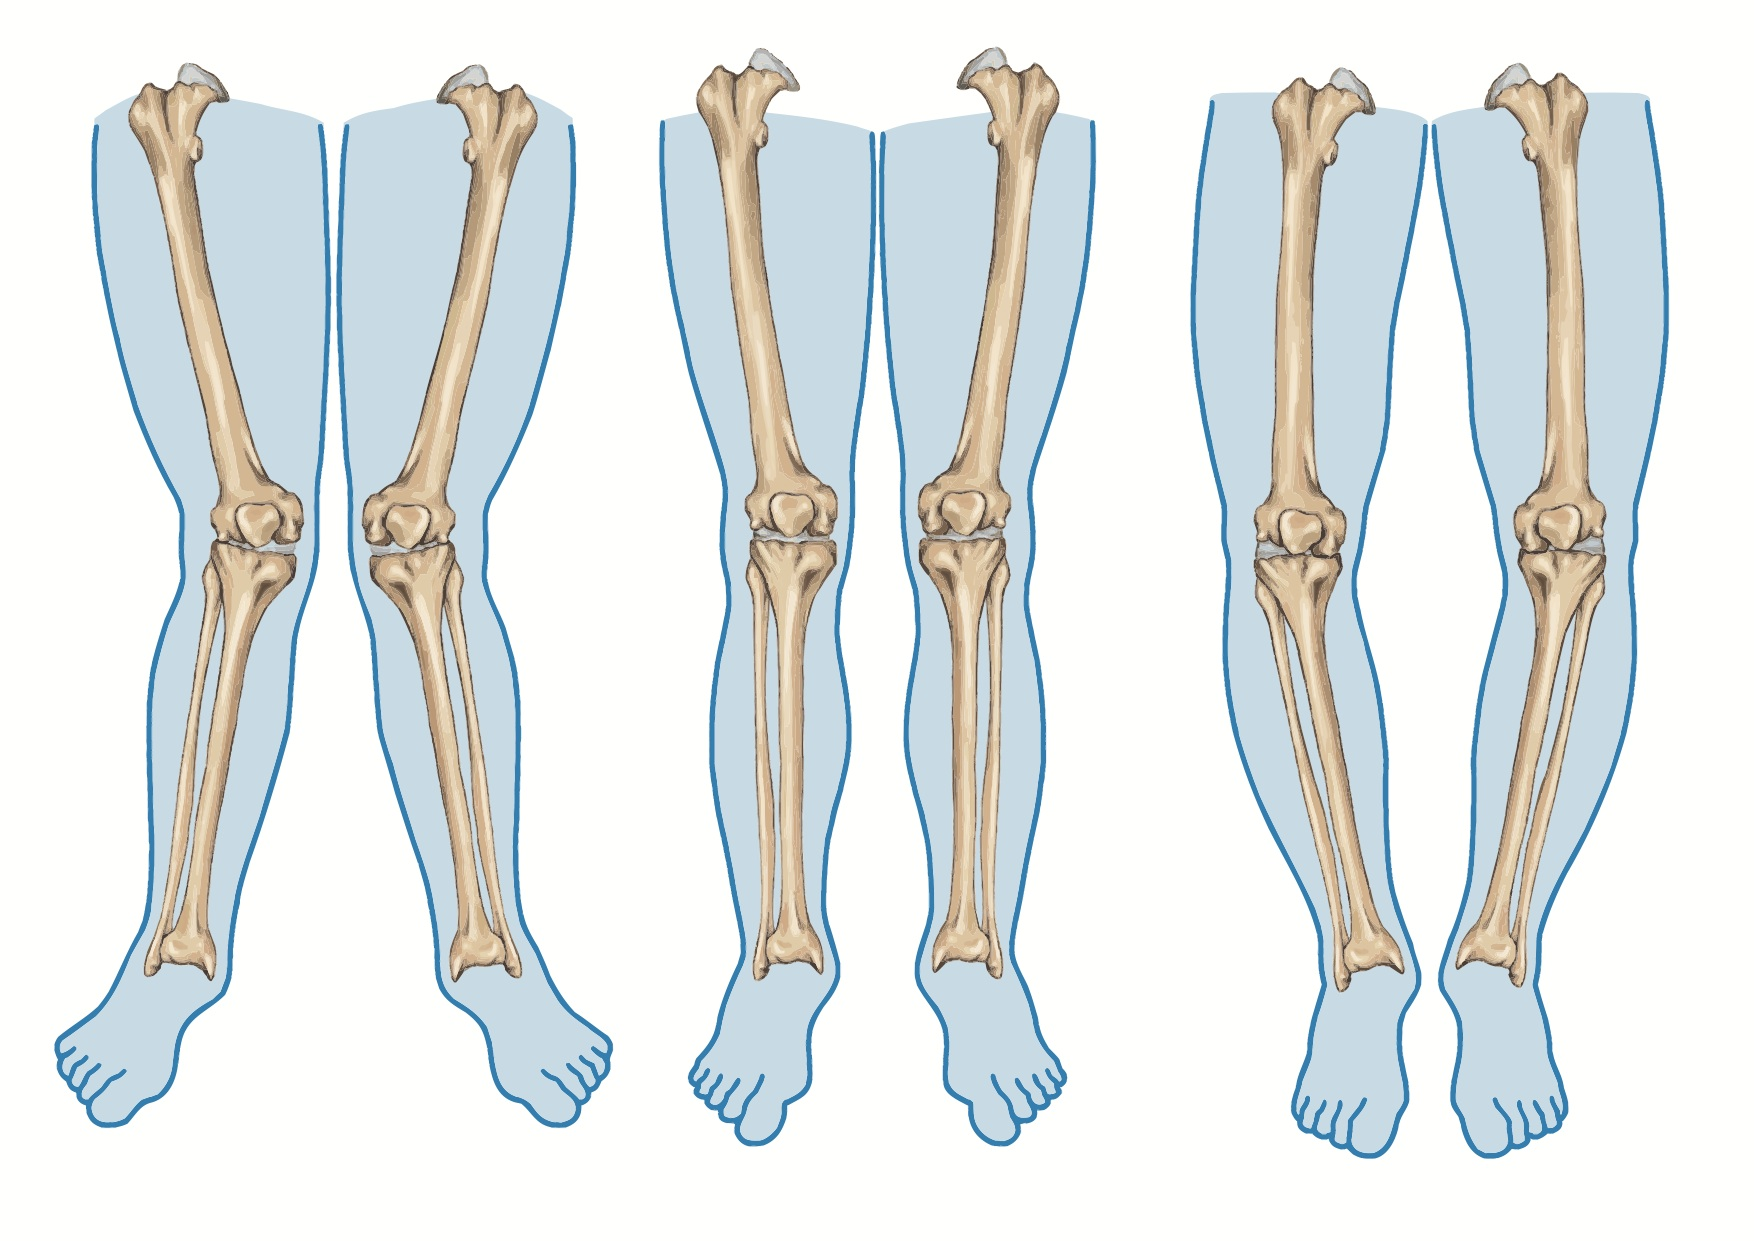 Three basic knee alignments: knees in, knees forward, and knees out. (Stock photo)